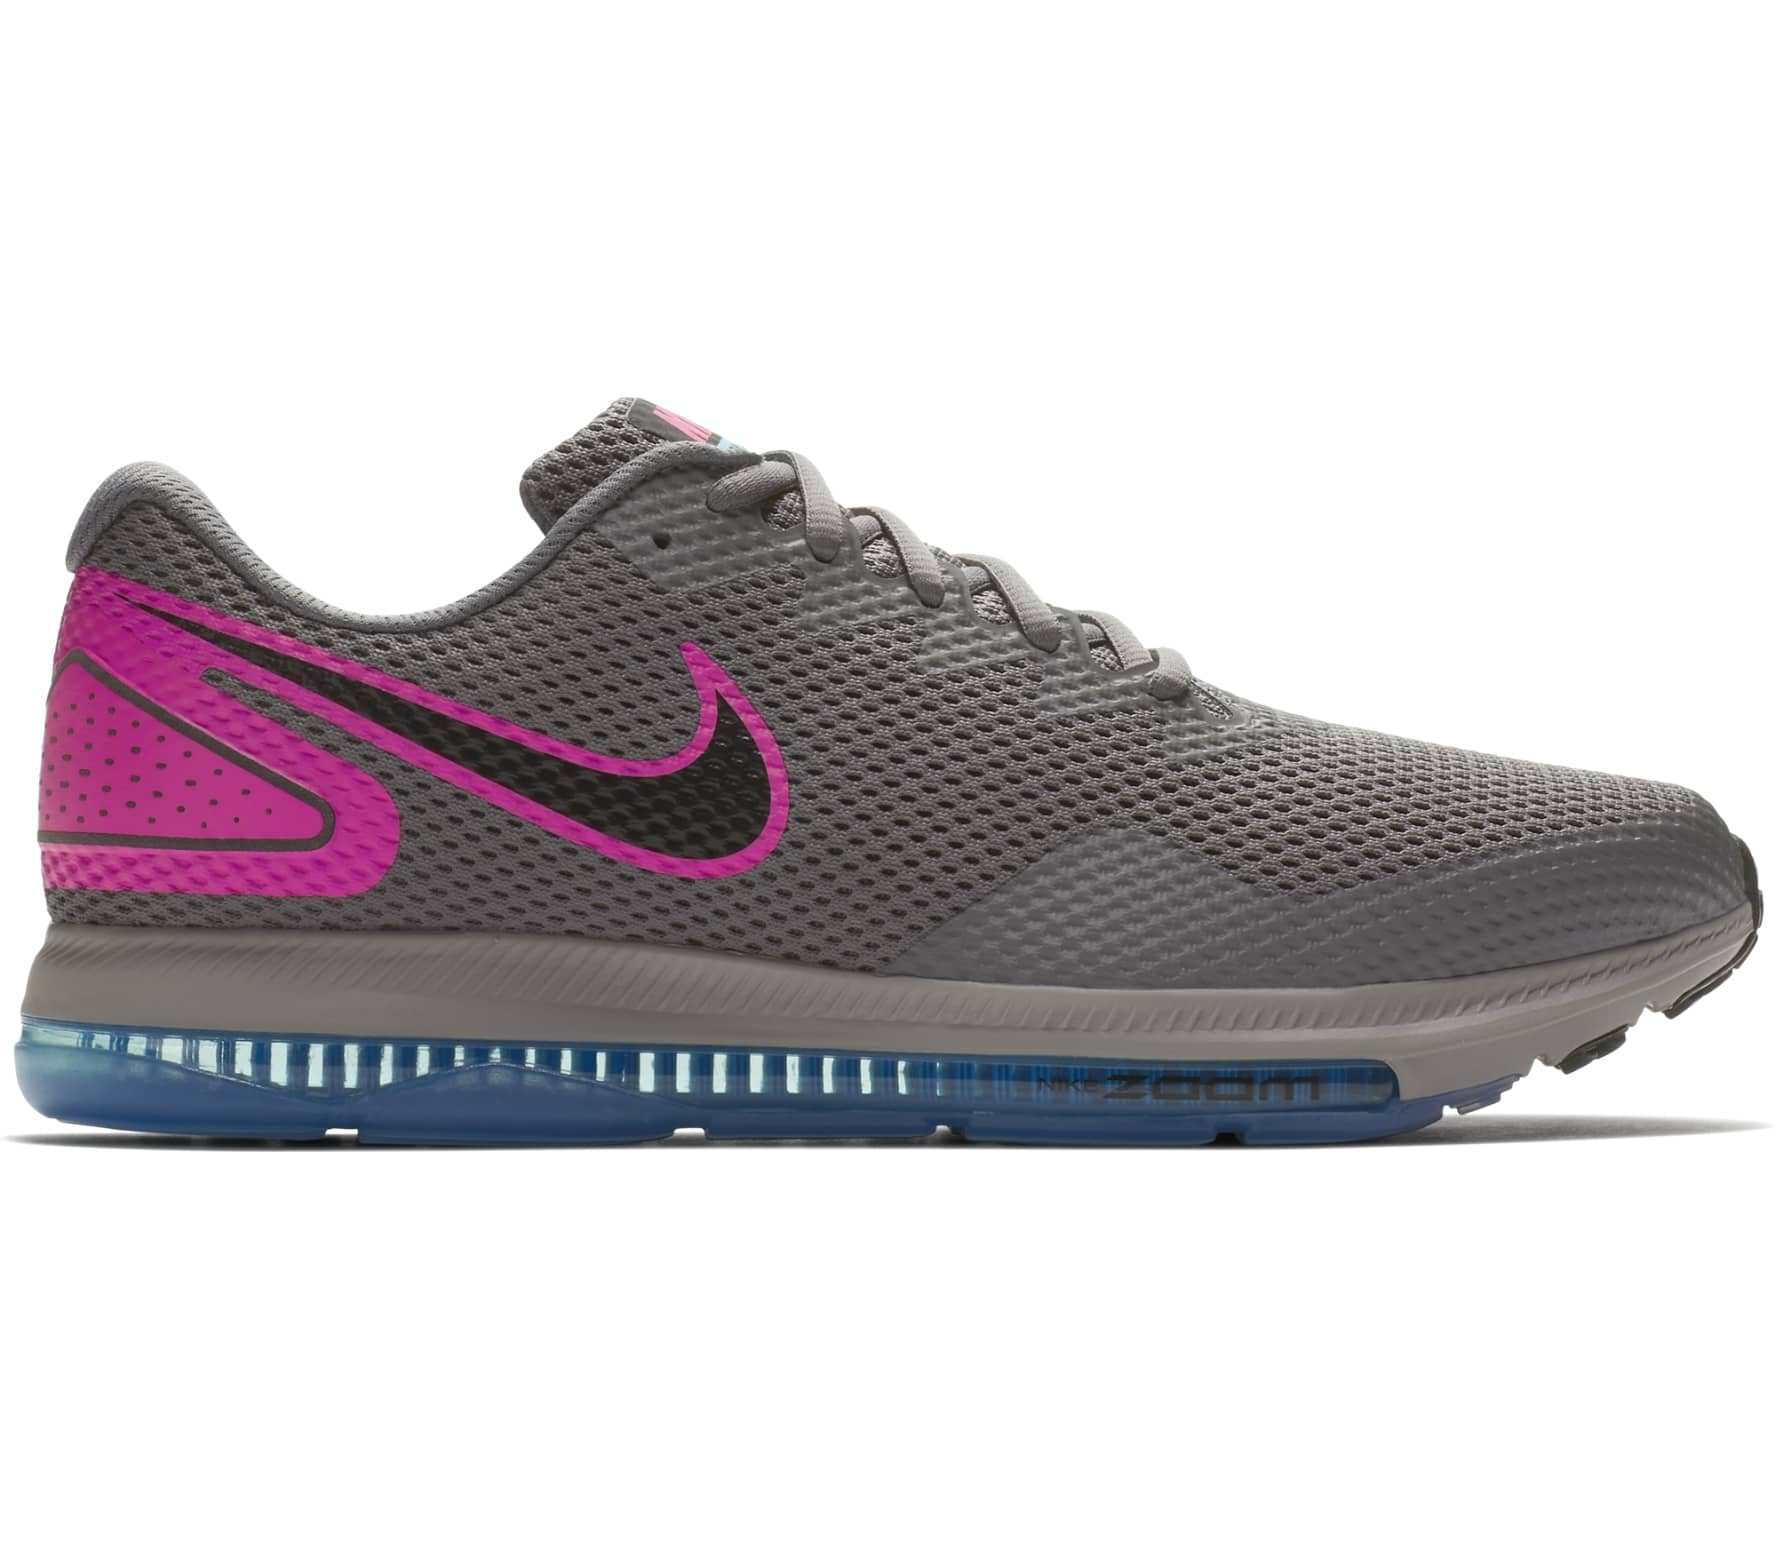 ea599acd86979 Nike - Zoom All Out Low 2 men s running shoes (dark grey pink) - buy ...